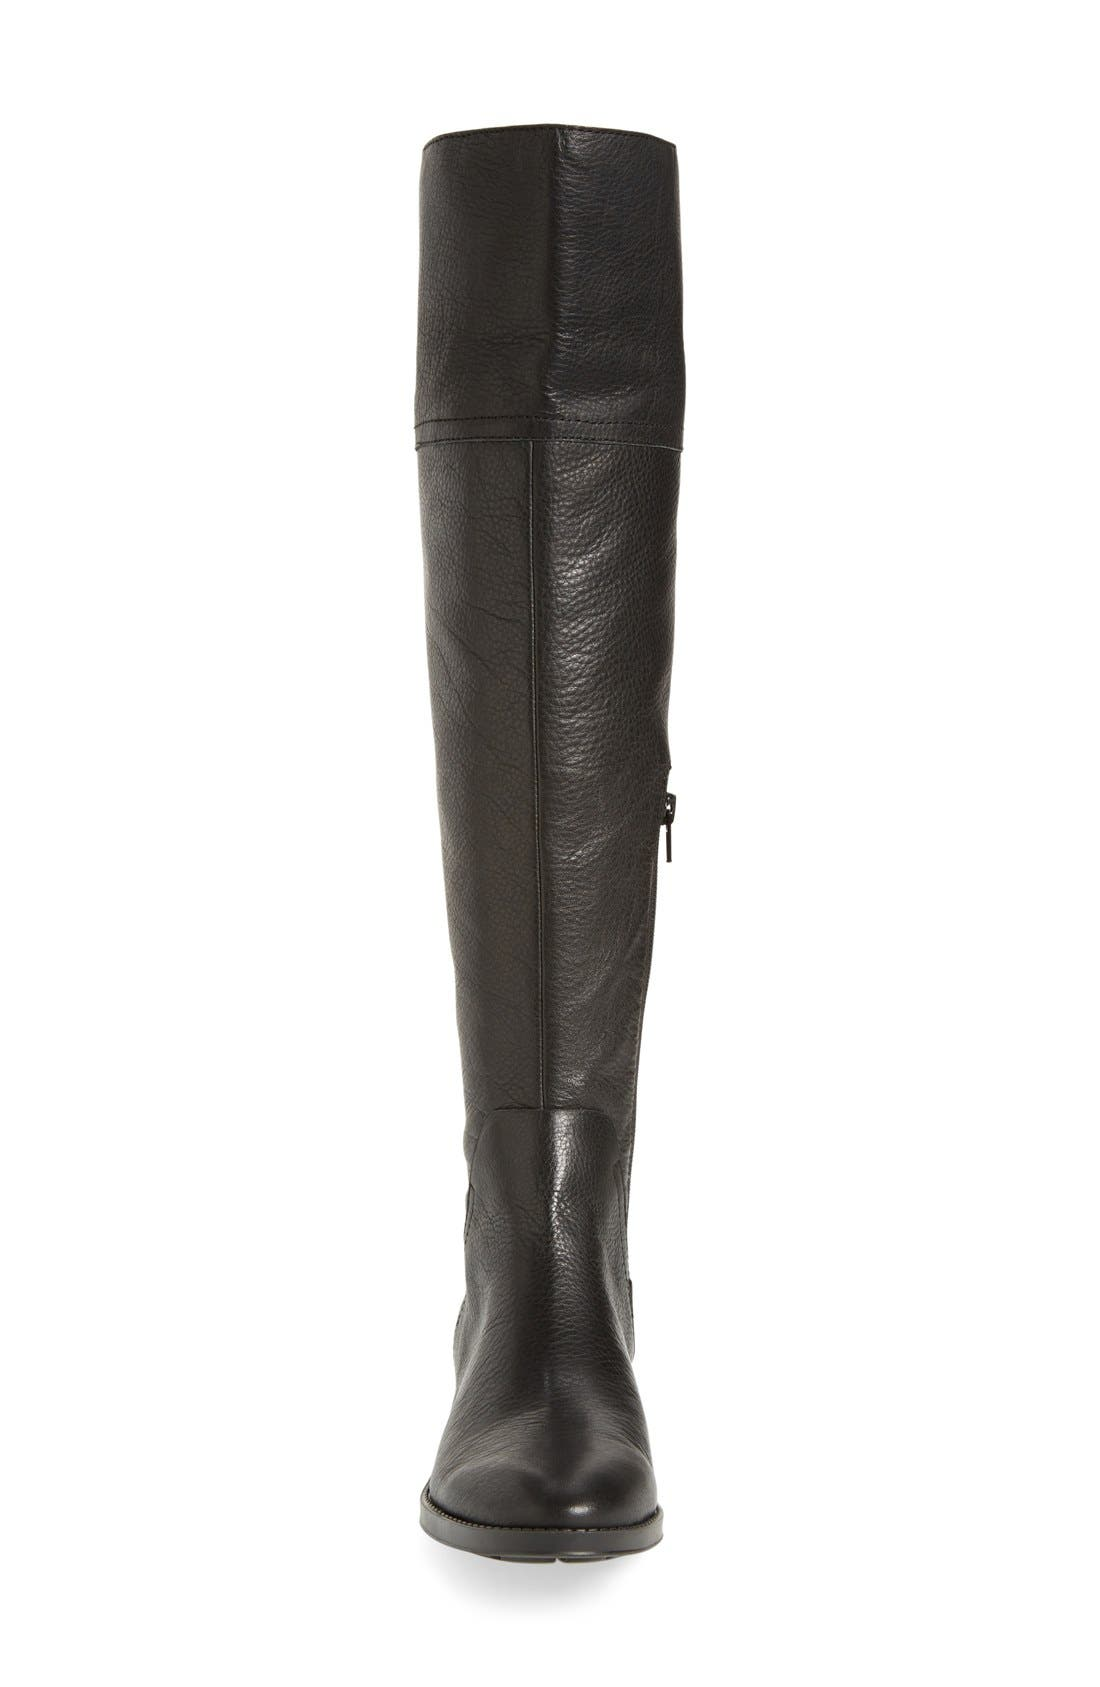 'Pedra' Over the Knee Boot,                             Alternate thumbnail 3, color,                             001